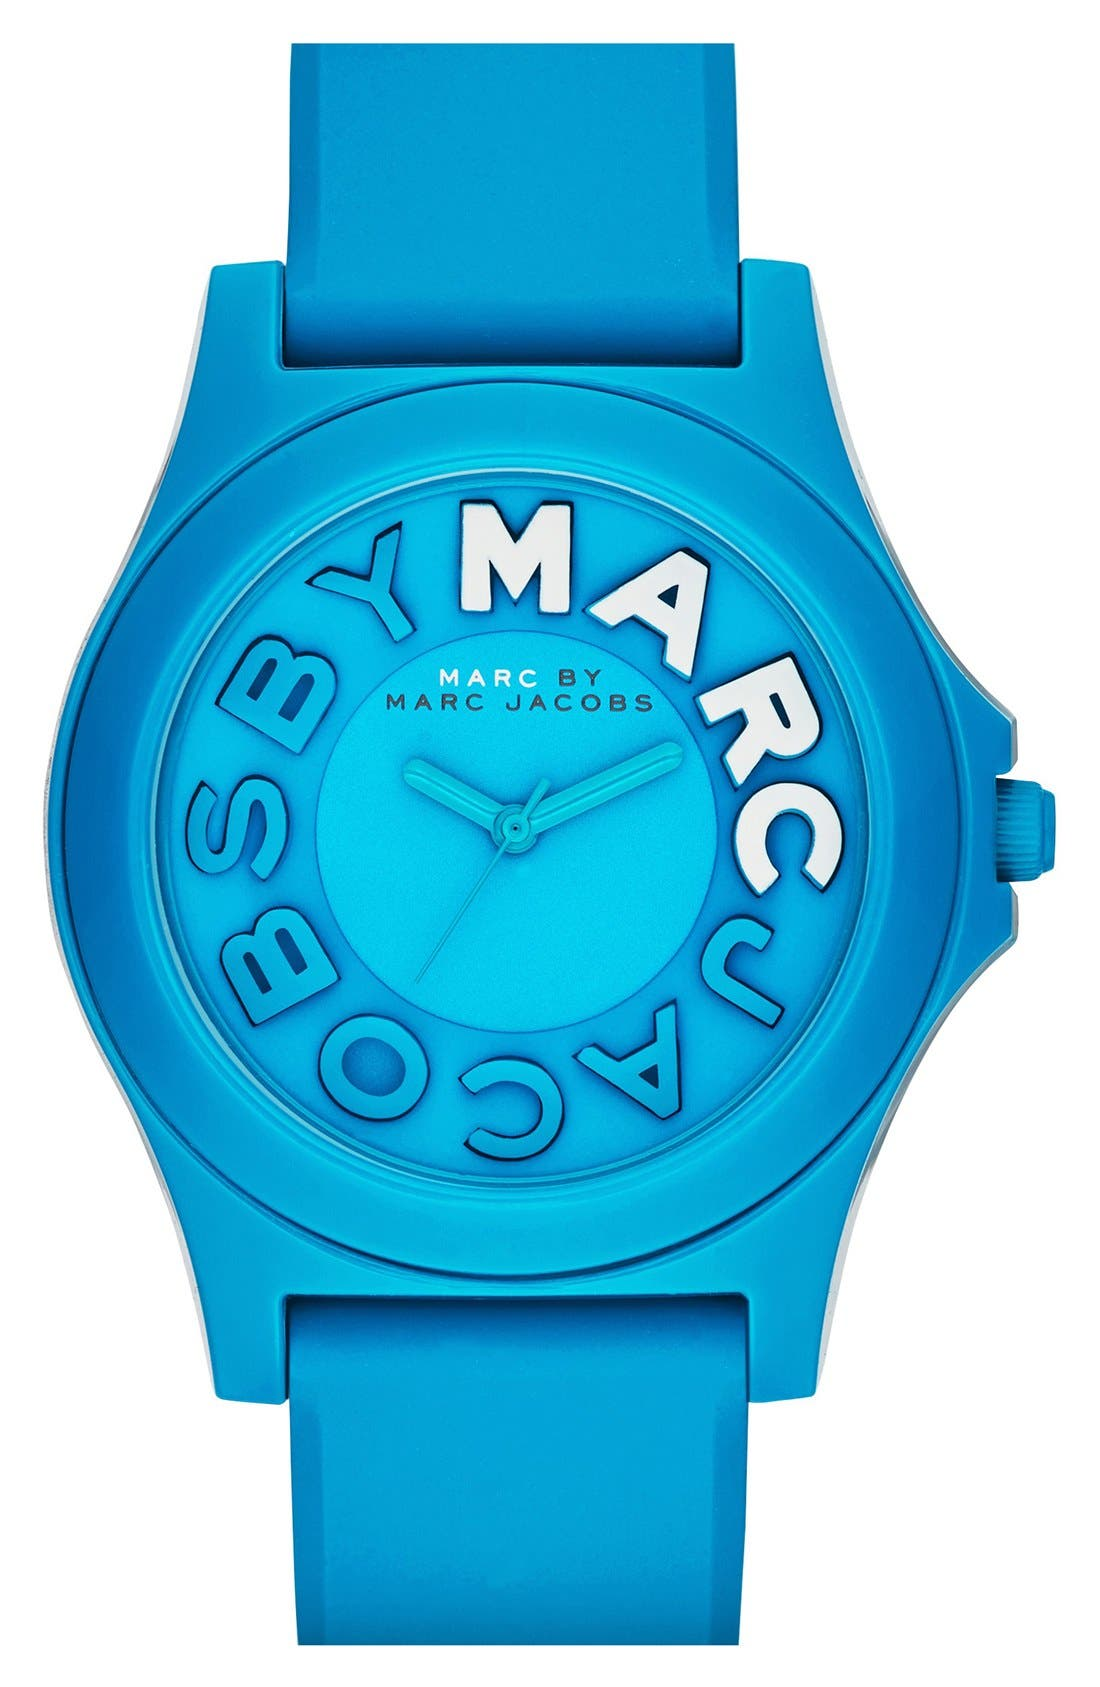 Main Image - MARC JACOBS 'Sloane' Silicone Strap Watch, 40mm